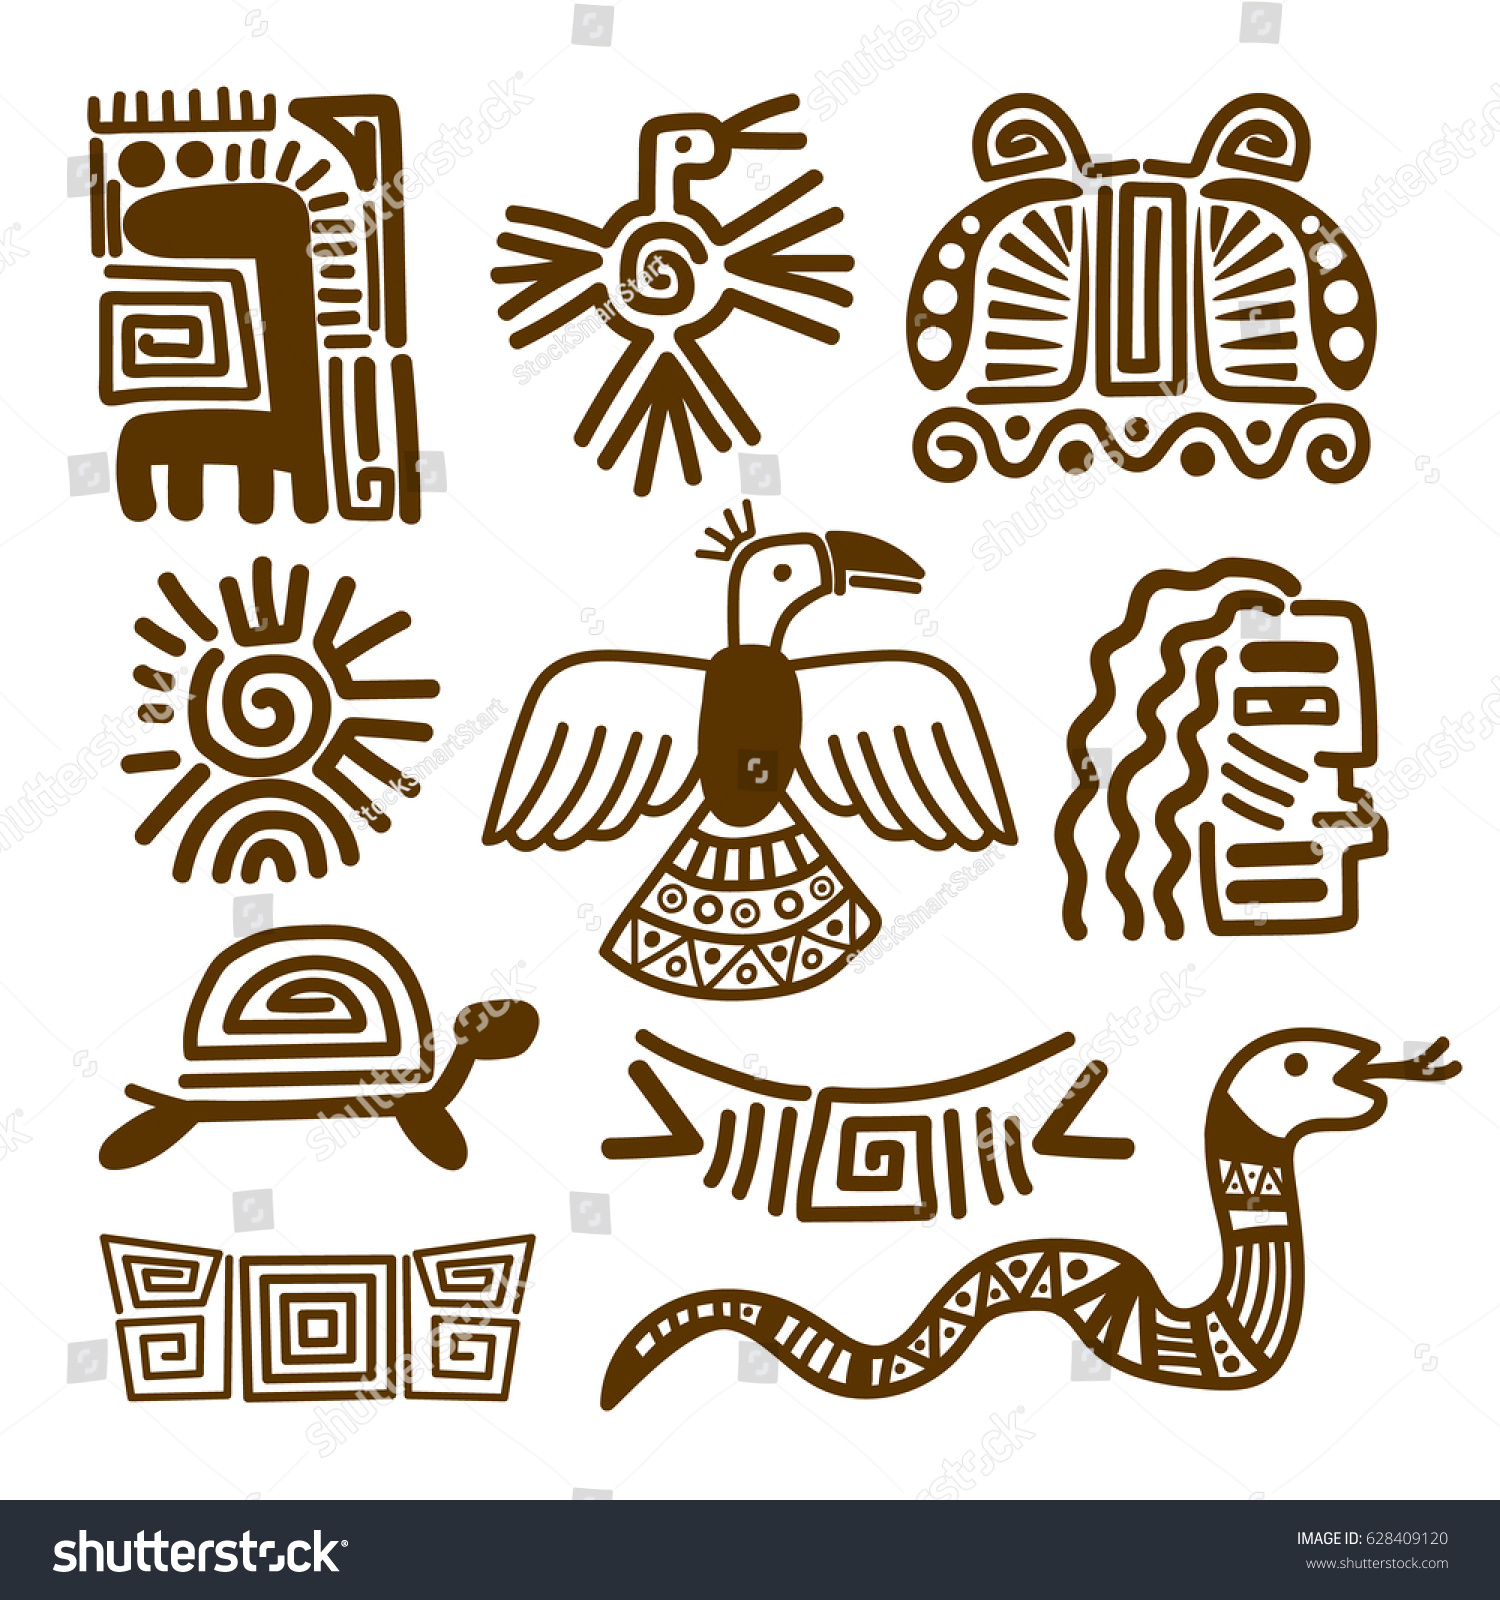 Tribal indian patterns ancient mexican symbols stock vector tribal indian patterns or ancient mexican symbols vector illustration buycottarizona Choice Image